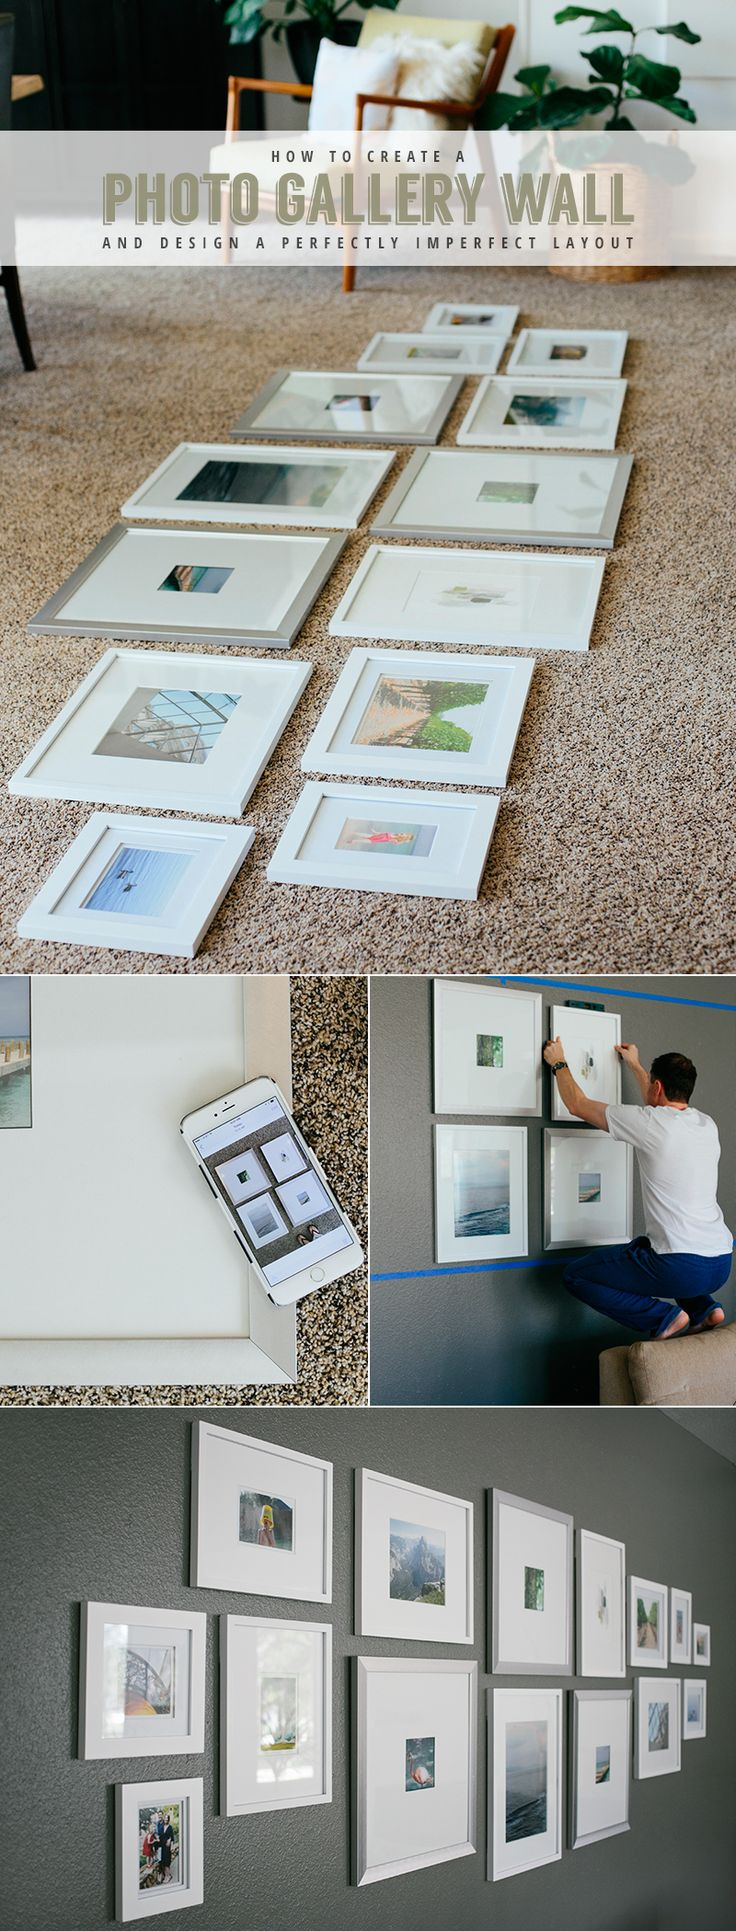 How to design a photo gallery wall with everything you need to know to achieve an asymmetrical but balance layout.